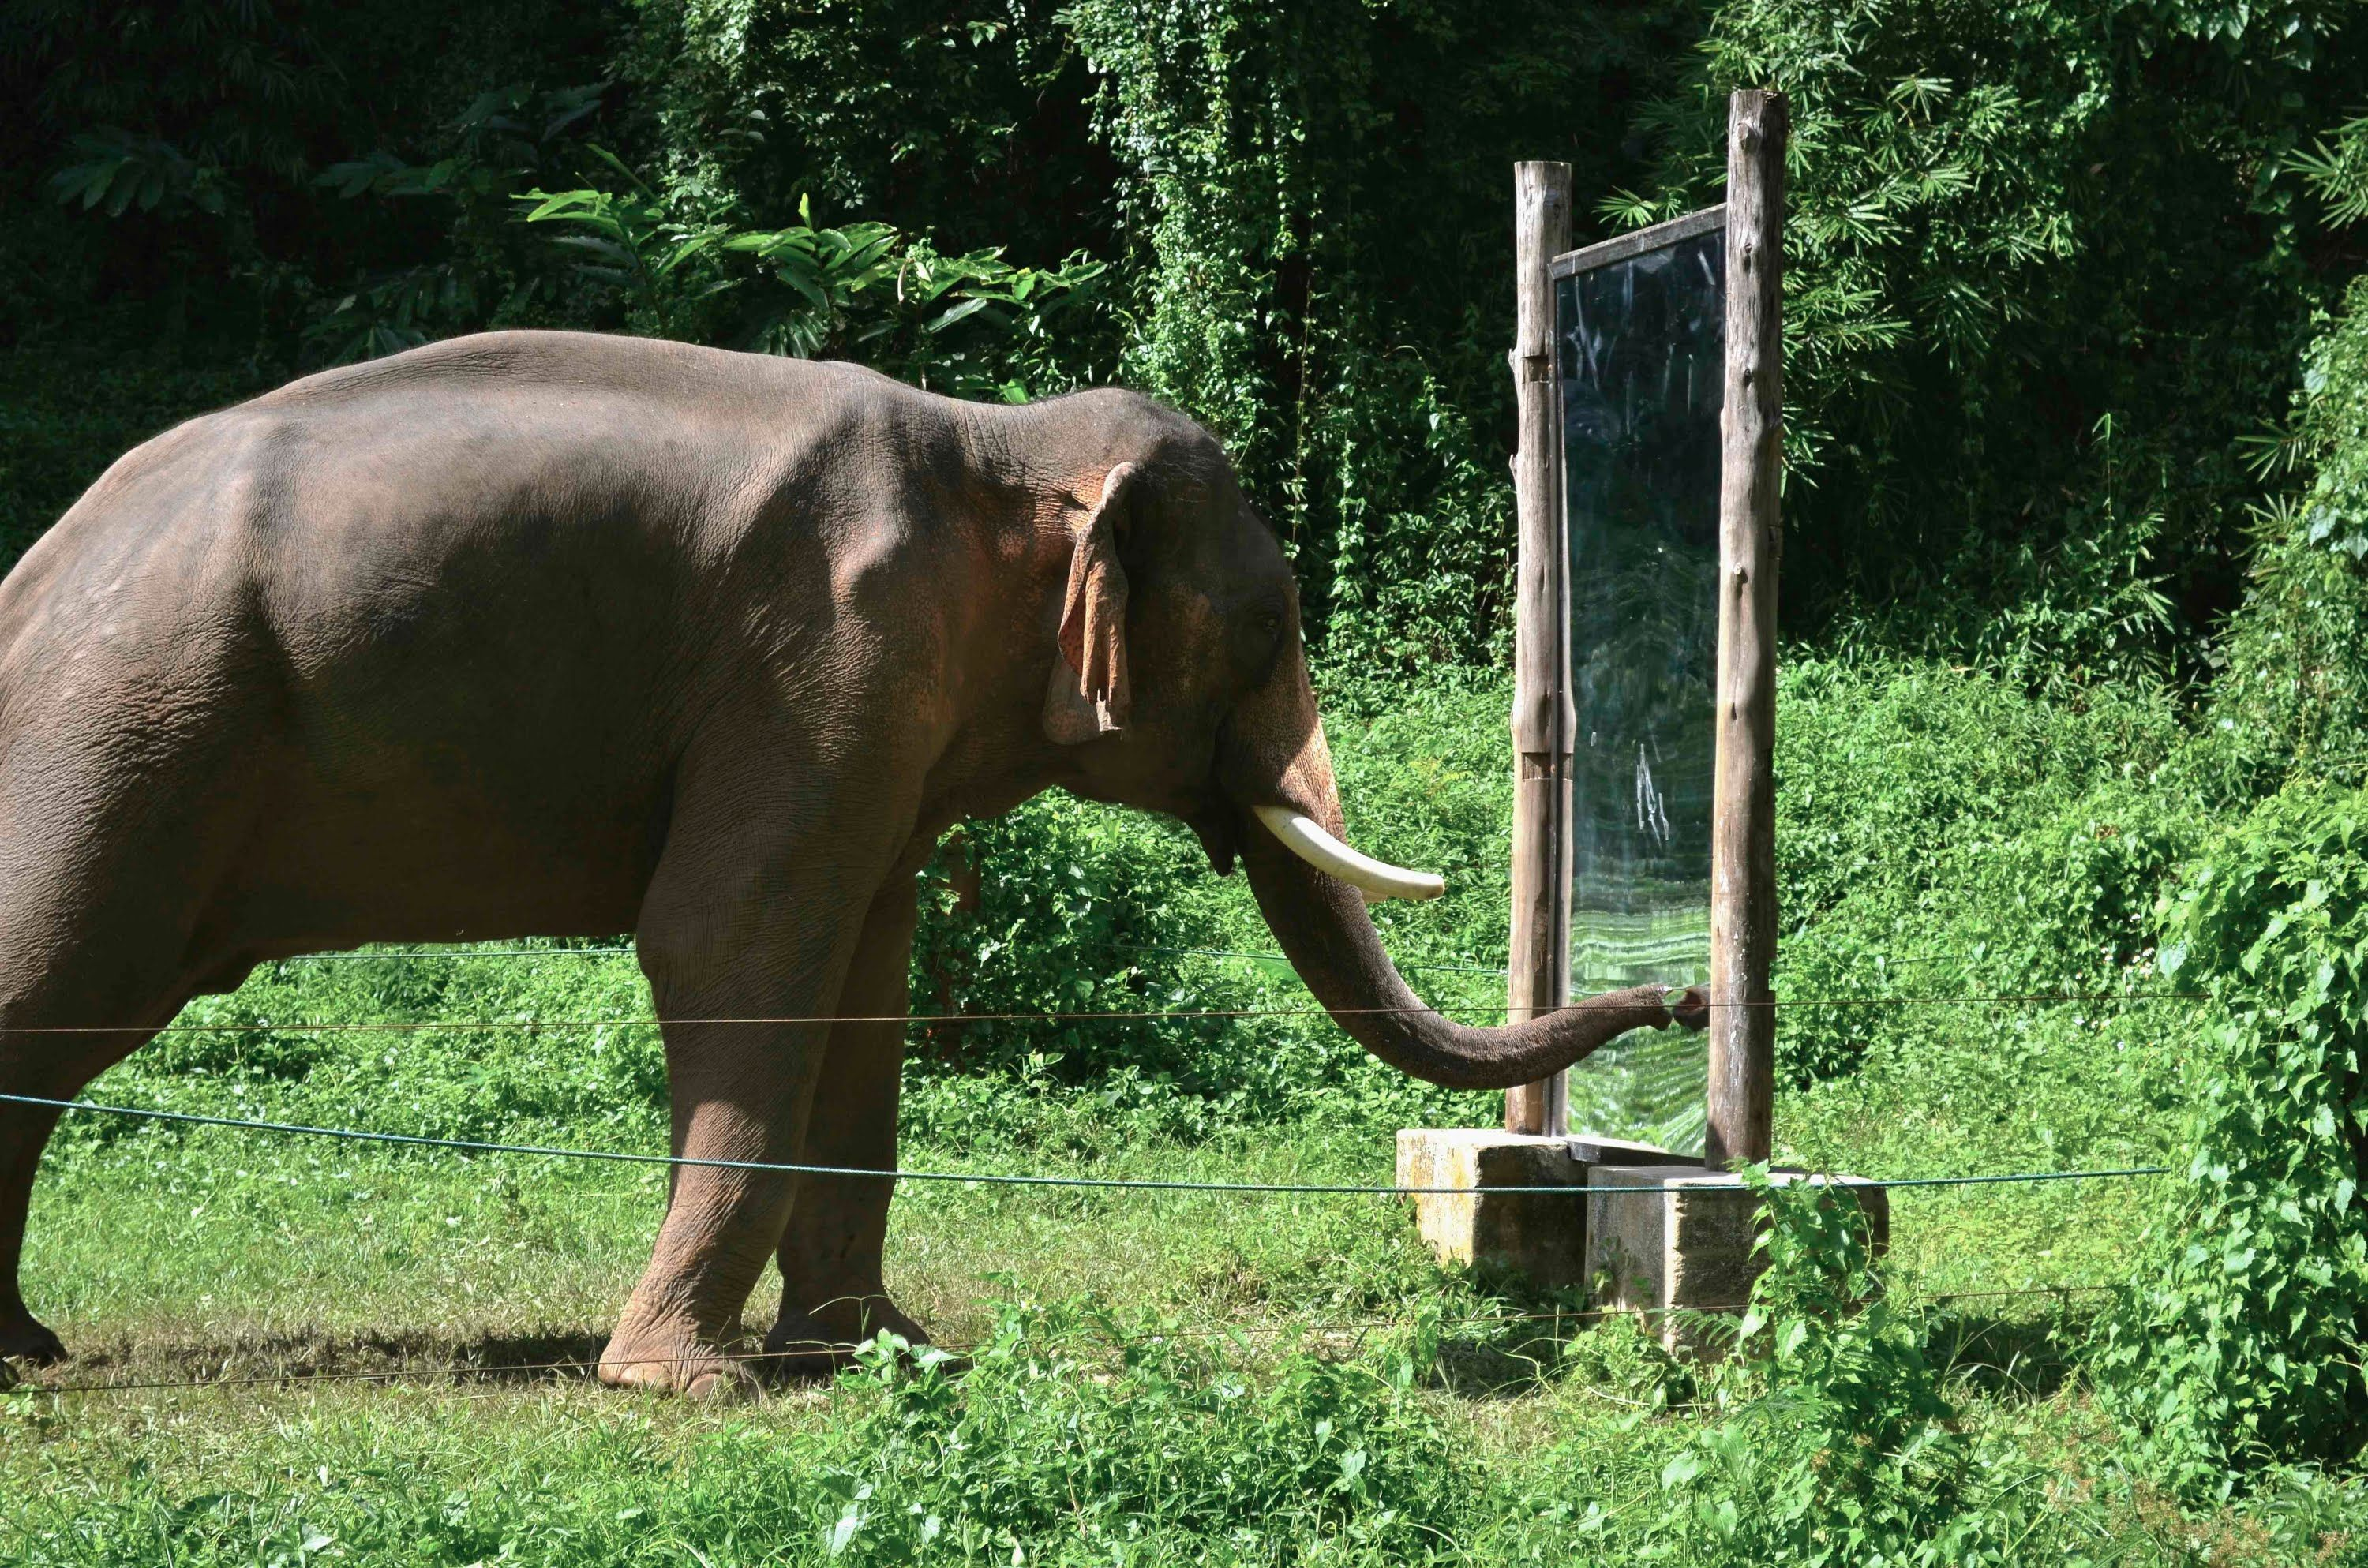 Mirror Self-Recognition in Asian Elephants